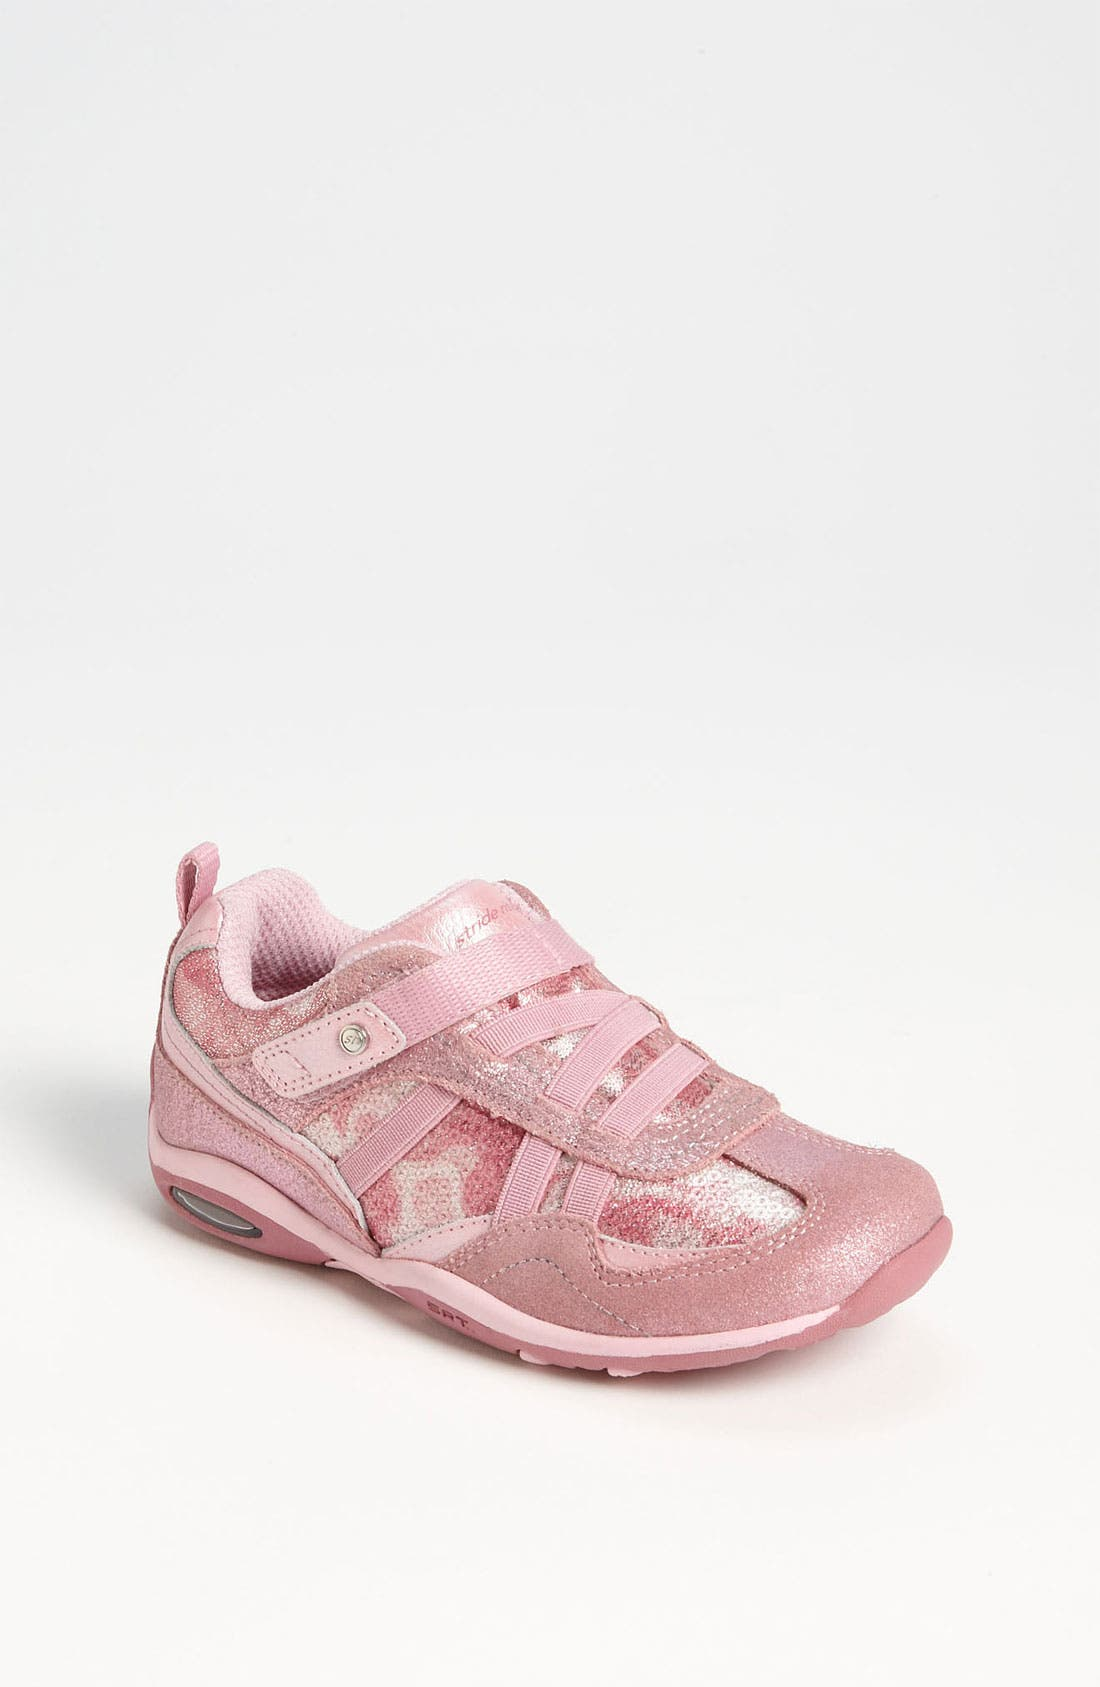 Alternate Image 1 Selected - Stride Rite 'Brandi' Sneaker (Toddler & Little Kid)